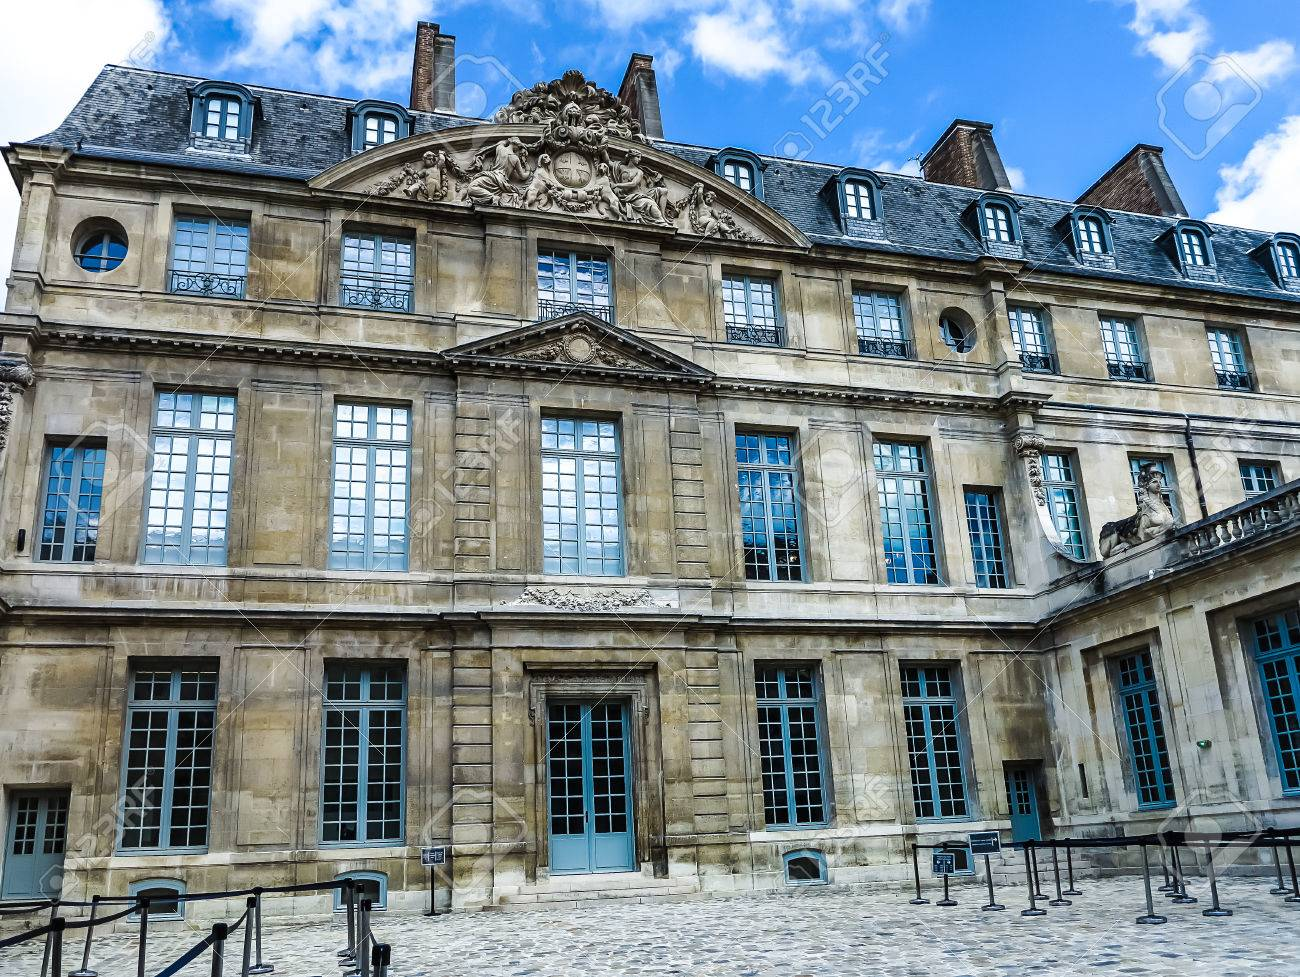 Museo Picasso Paris.Paris France July 28 2016 The Musee Picasso Is An Art Gallery